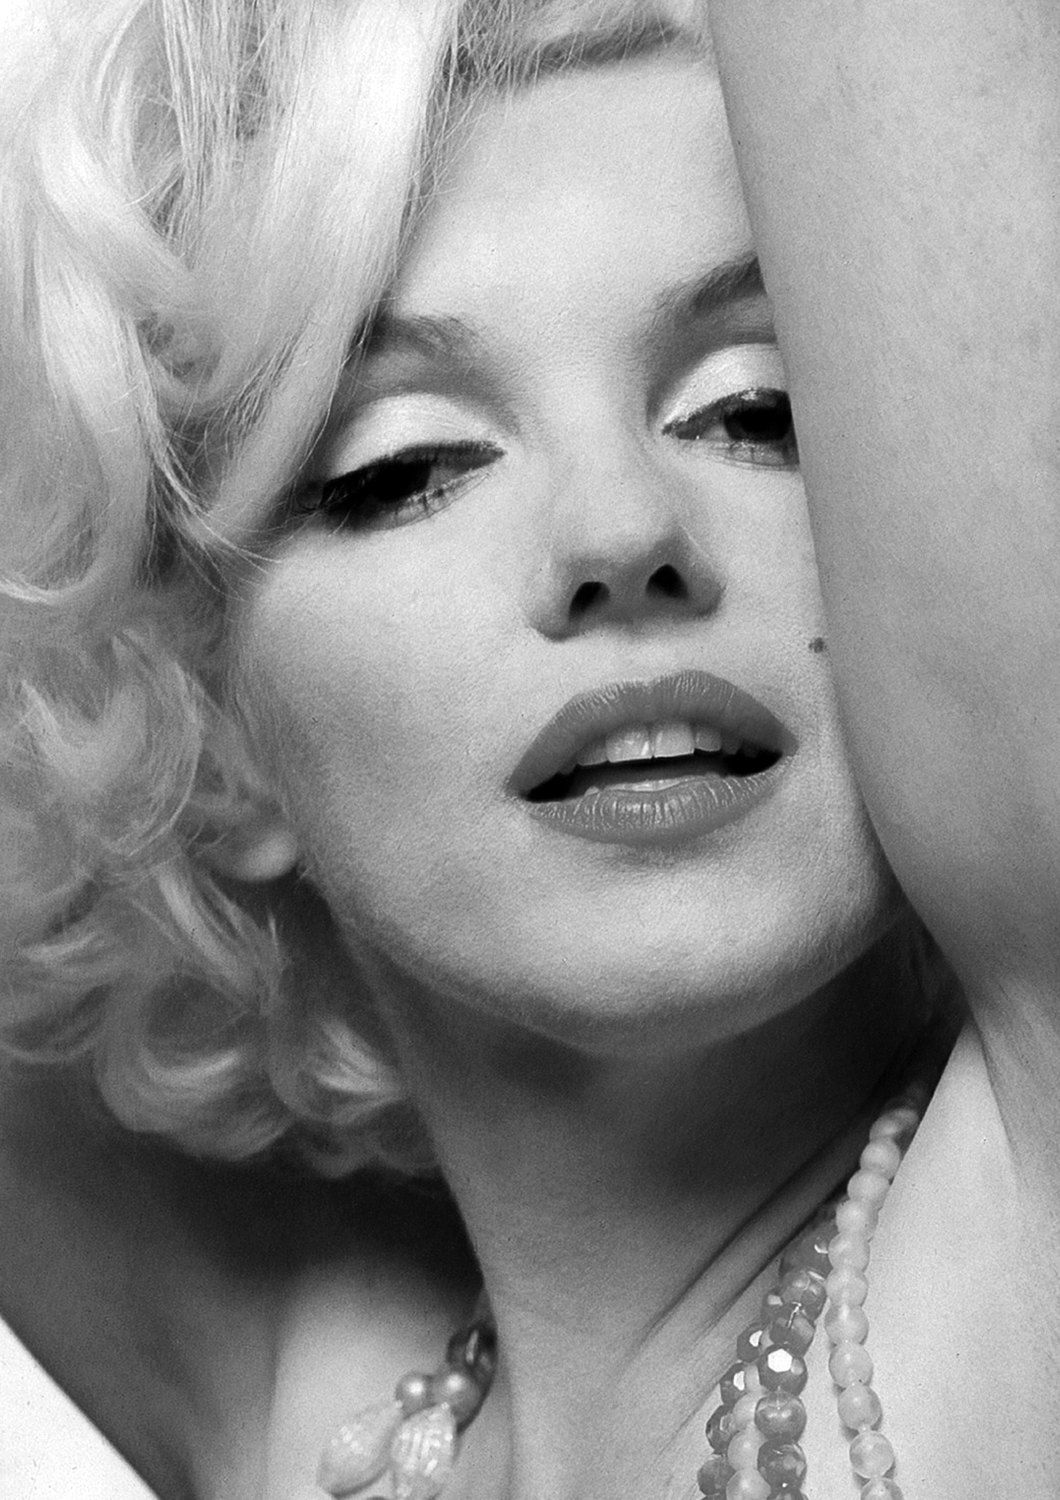 Marilyn Monroe Monochrome Photographic Print 05 (A4 Size - 210mm x ...